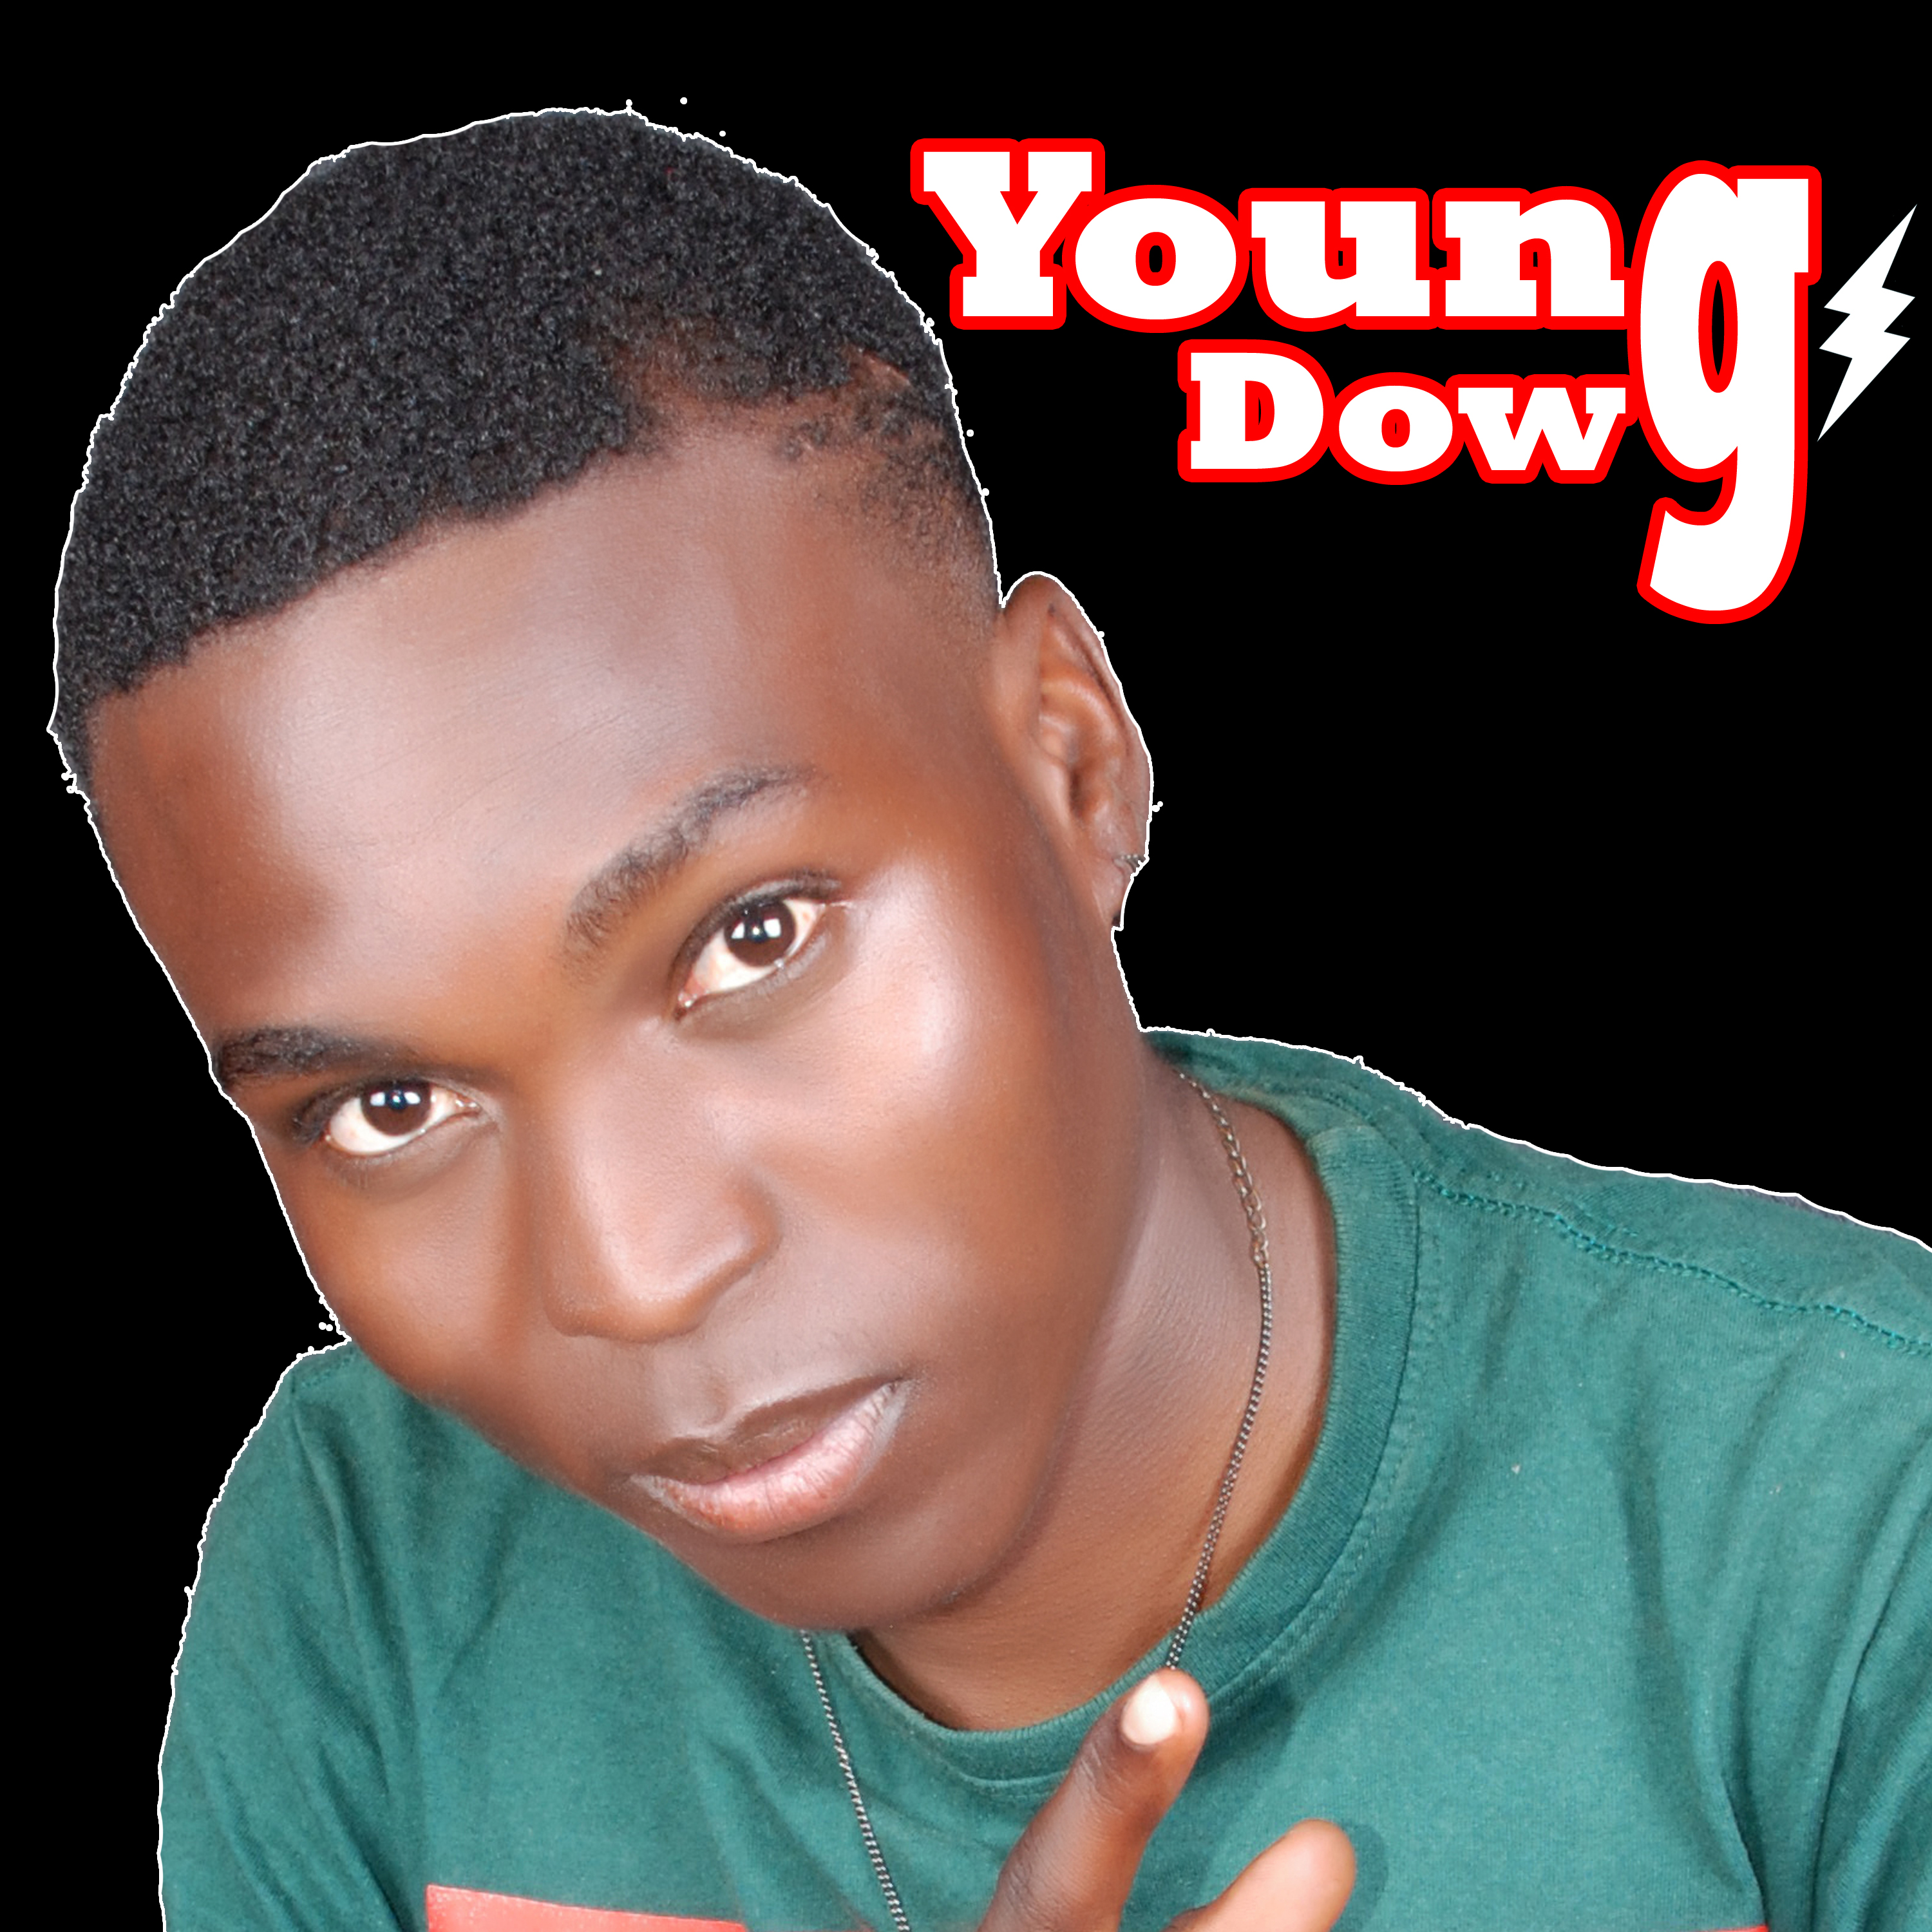 young dowg music